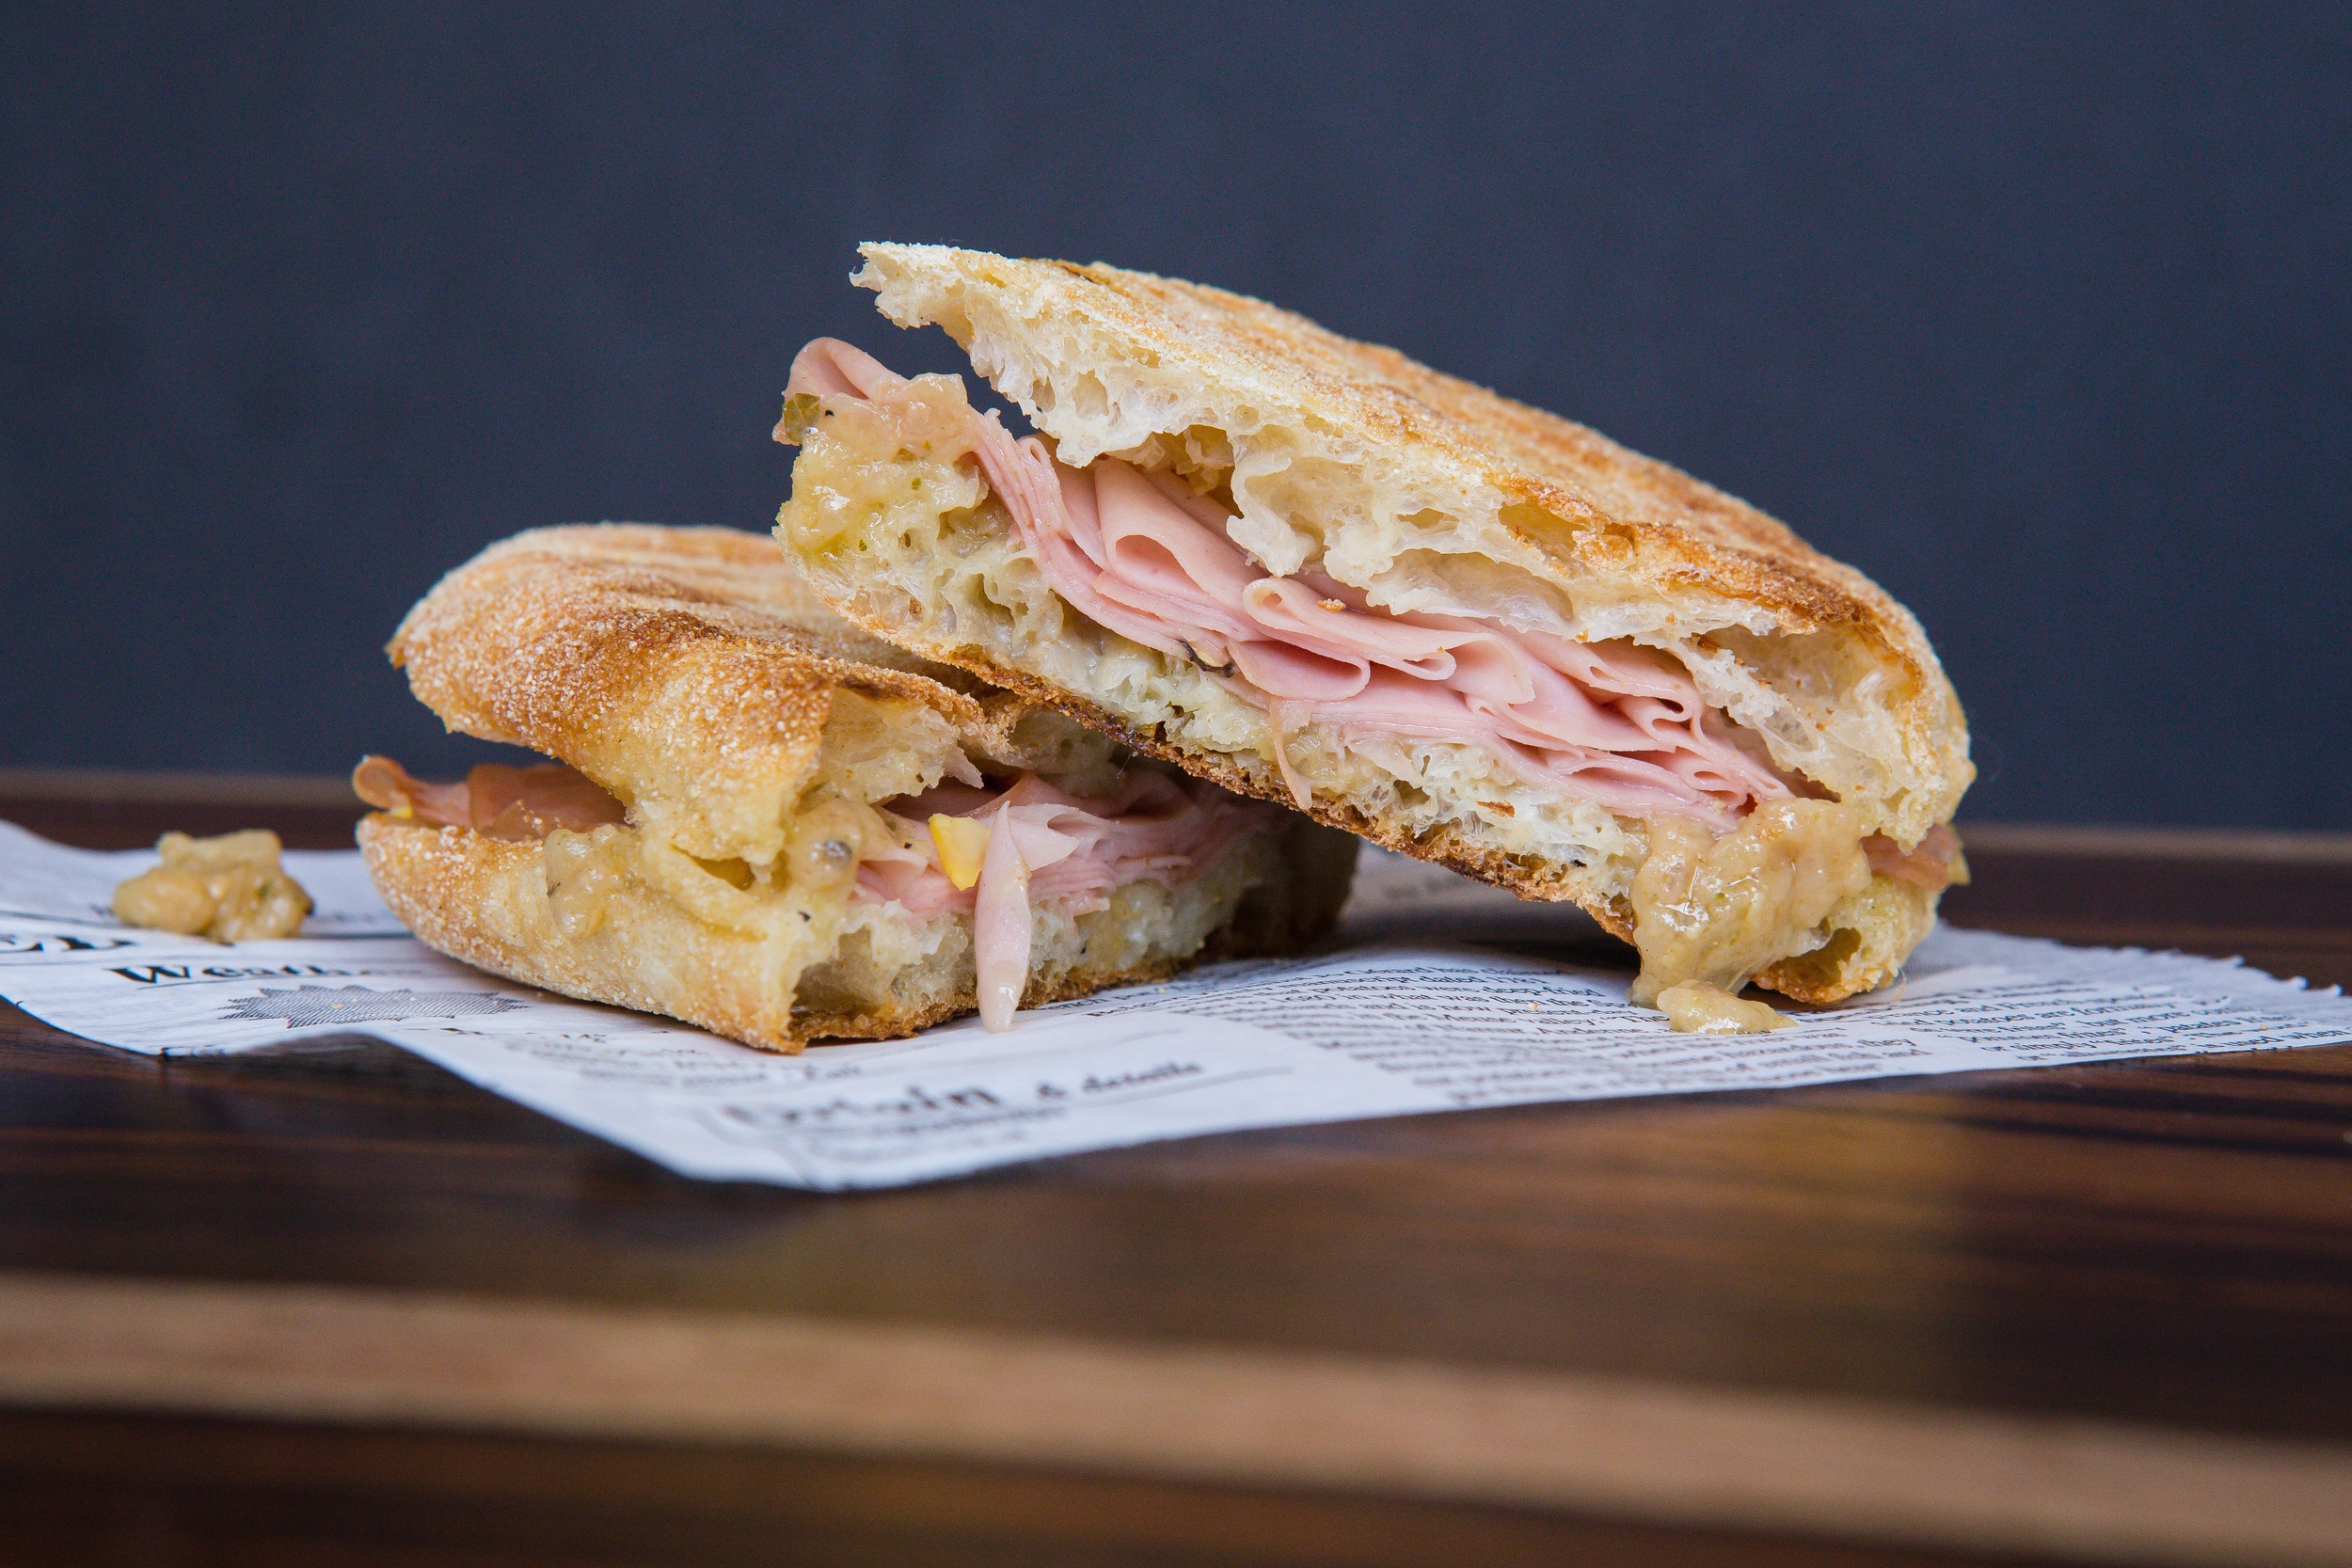 Mortadella with Truffled Artichoke Spread / Photo by Eric Vitale Photography